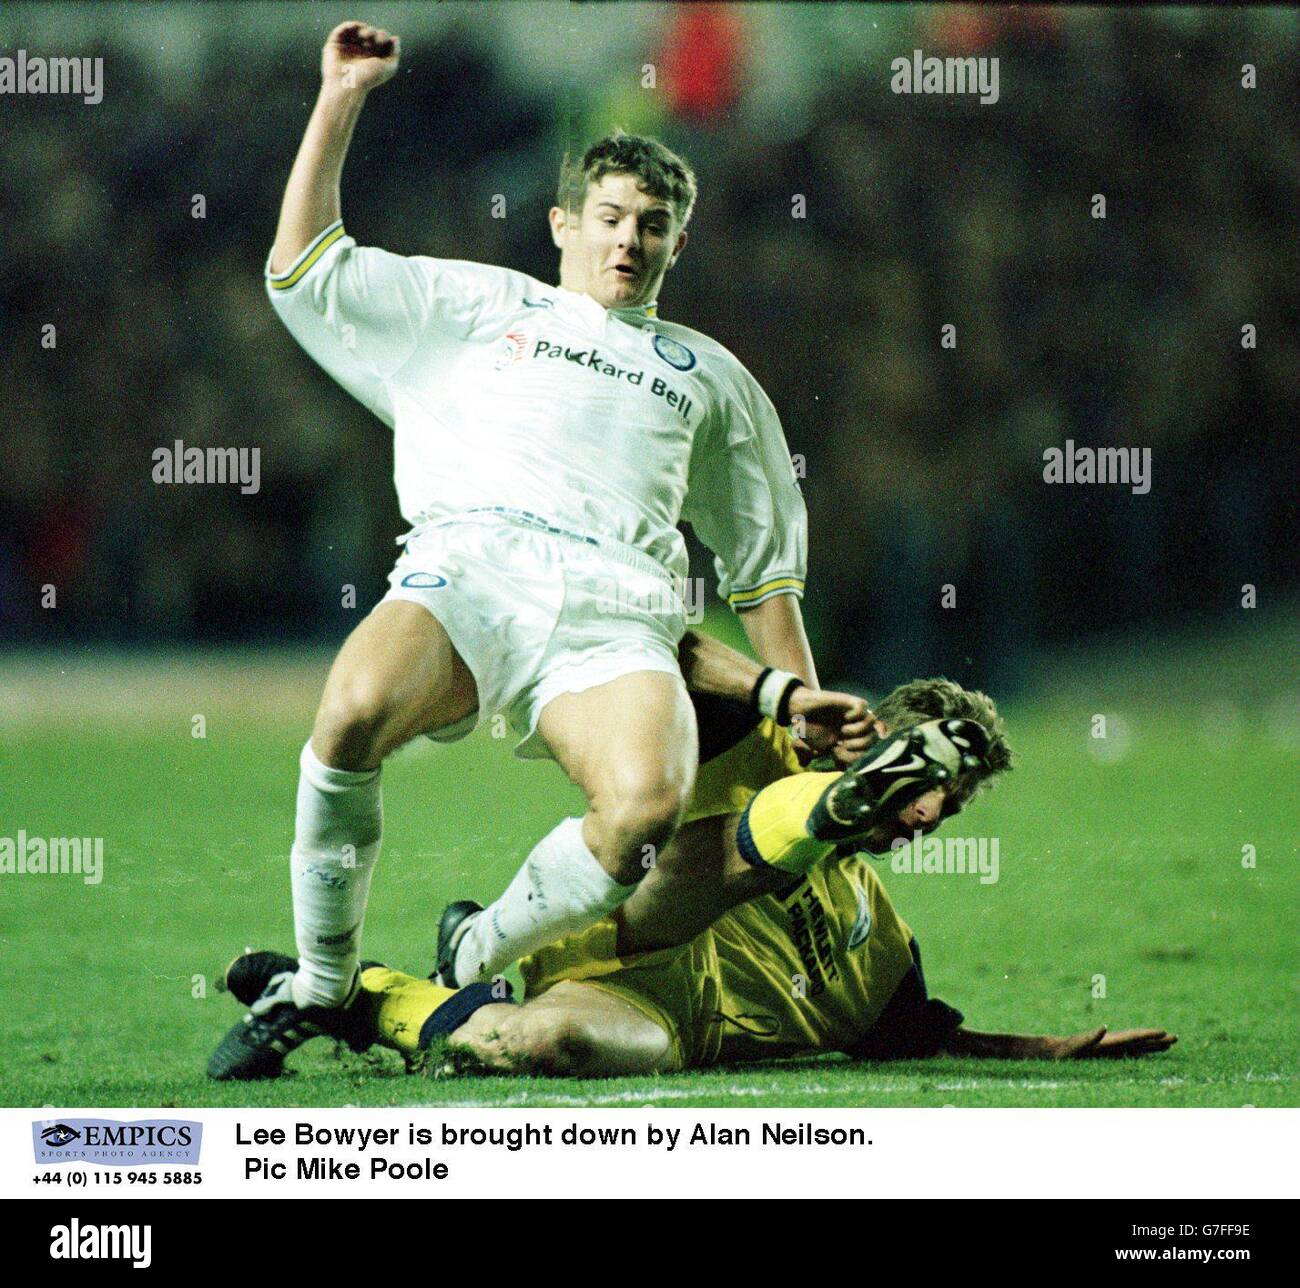 Leeds United Is Brought Down By Alan Neilson Tottenham